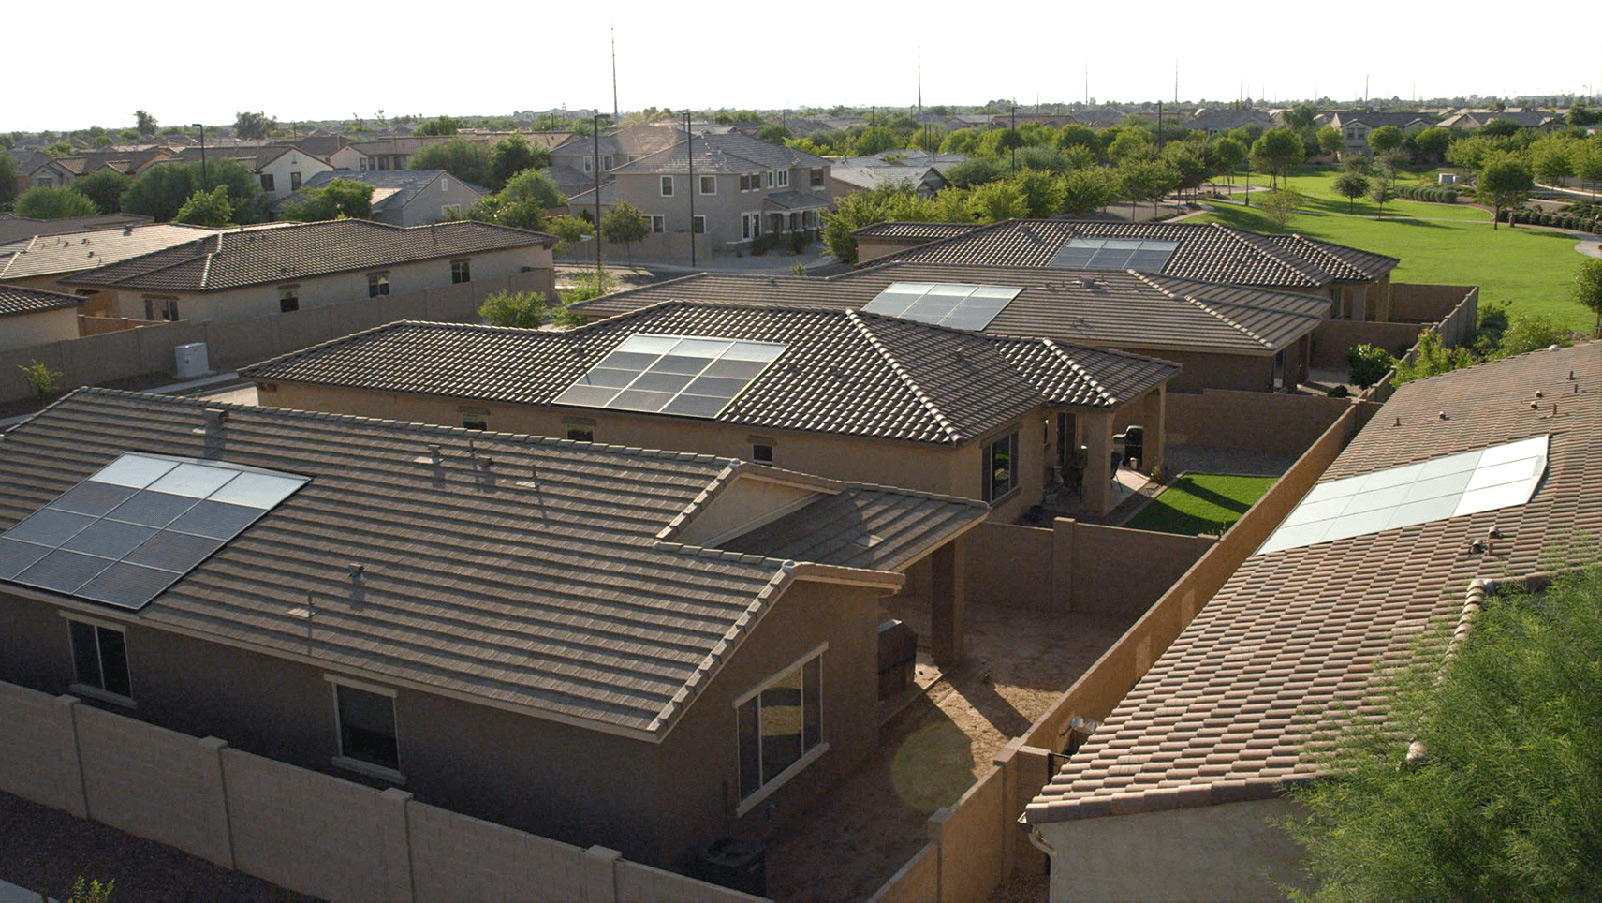 Residential homes with rooftop solar panels.